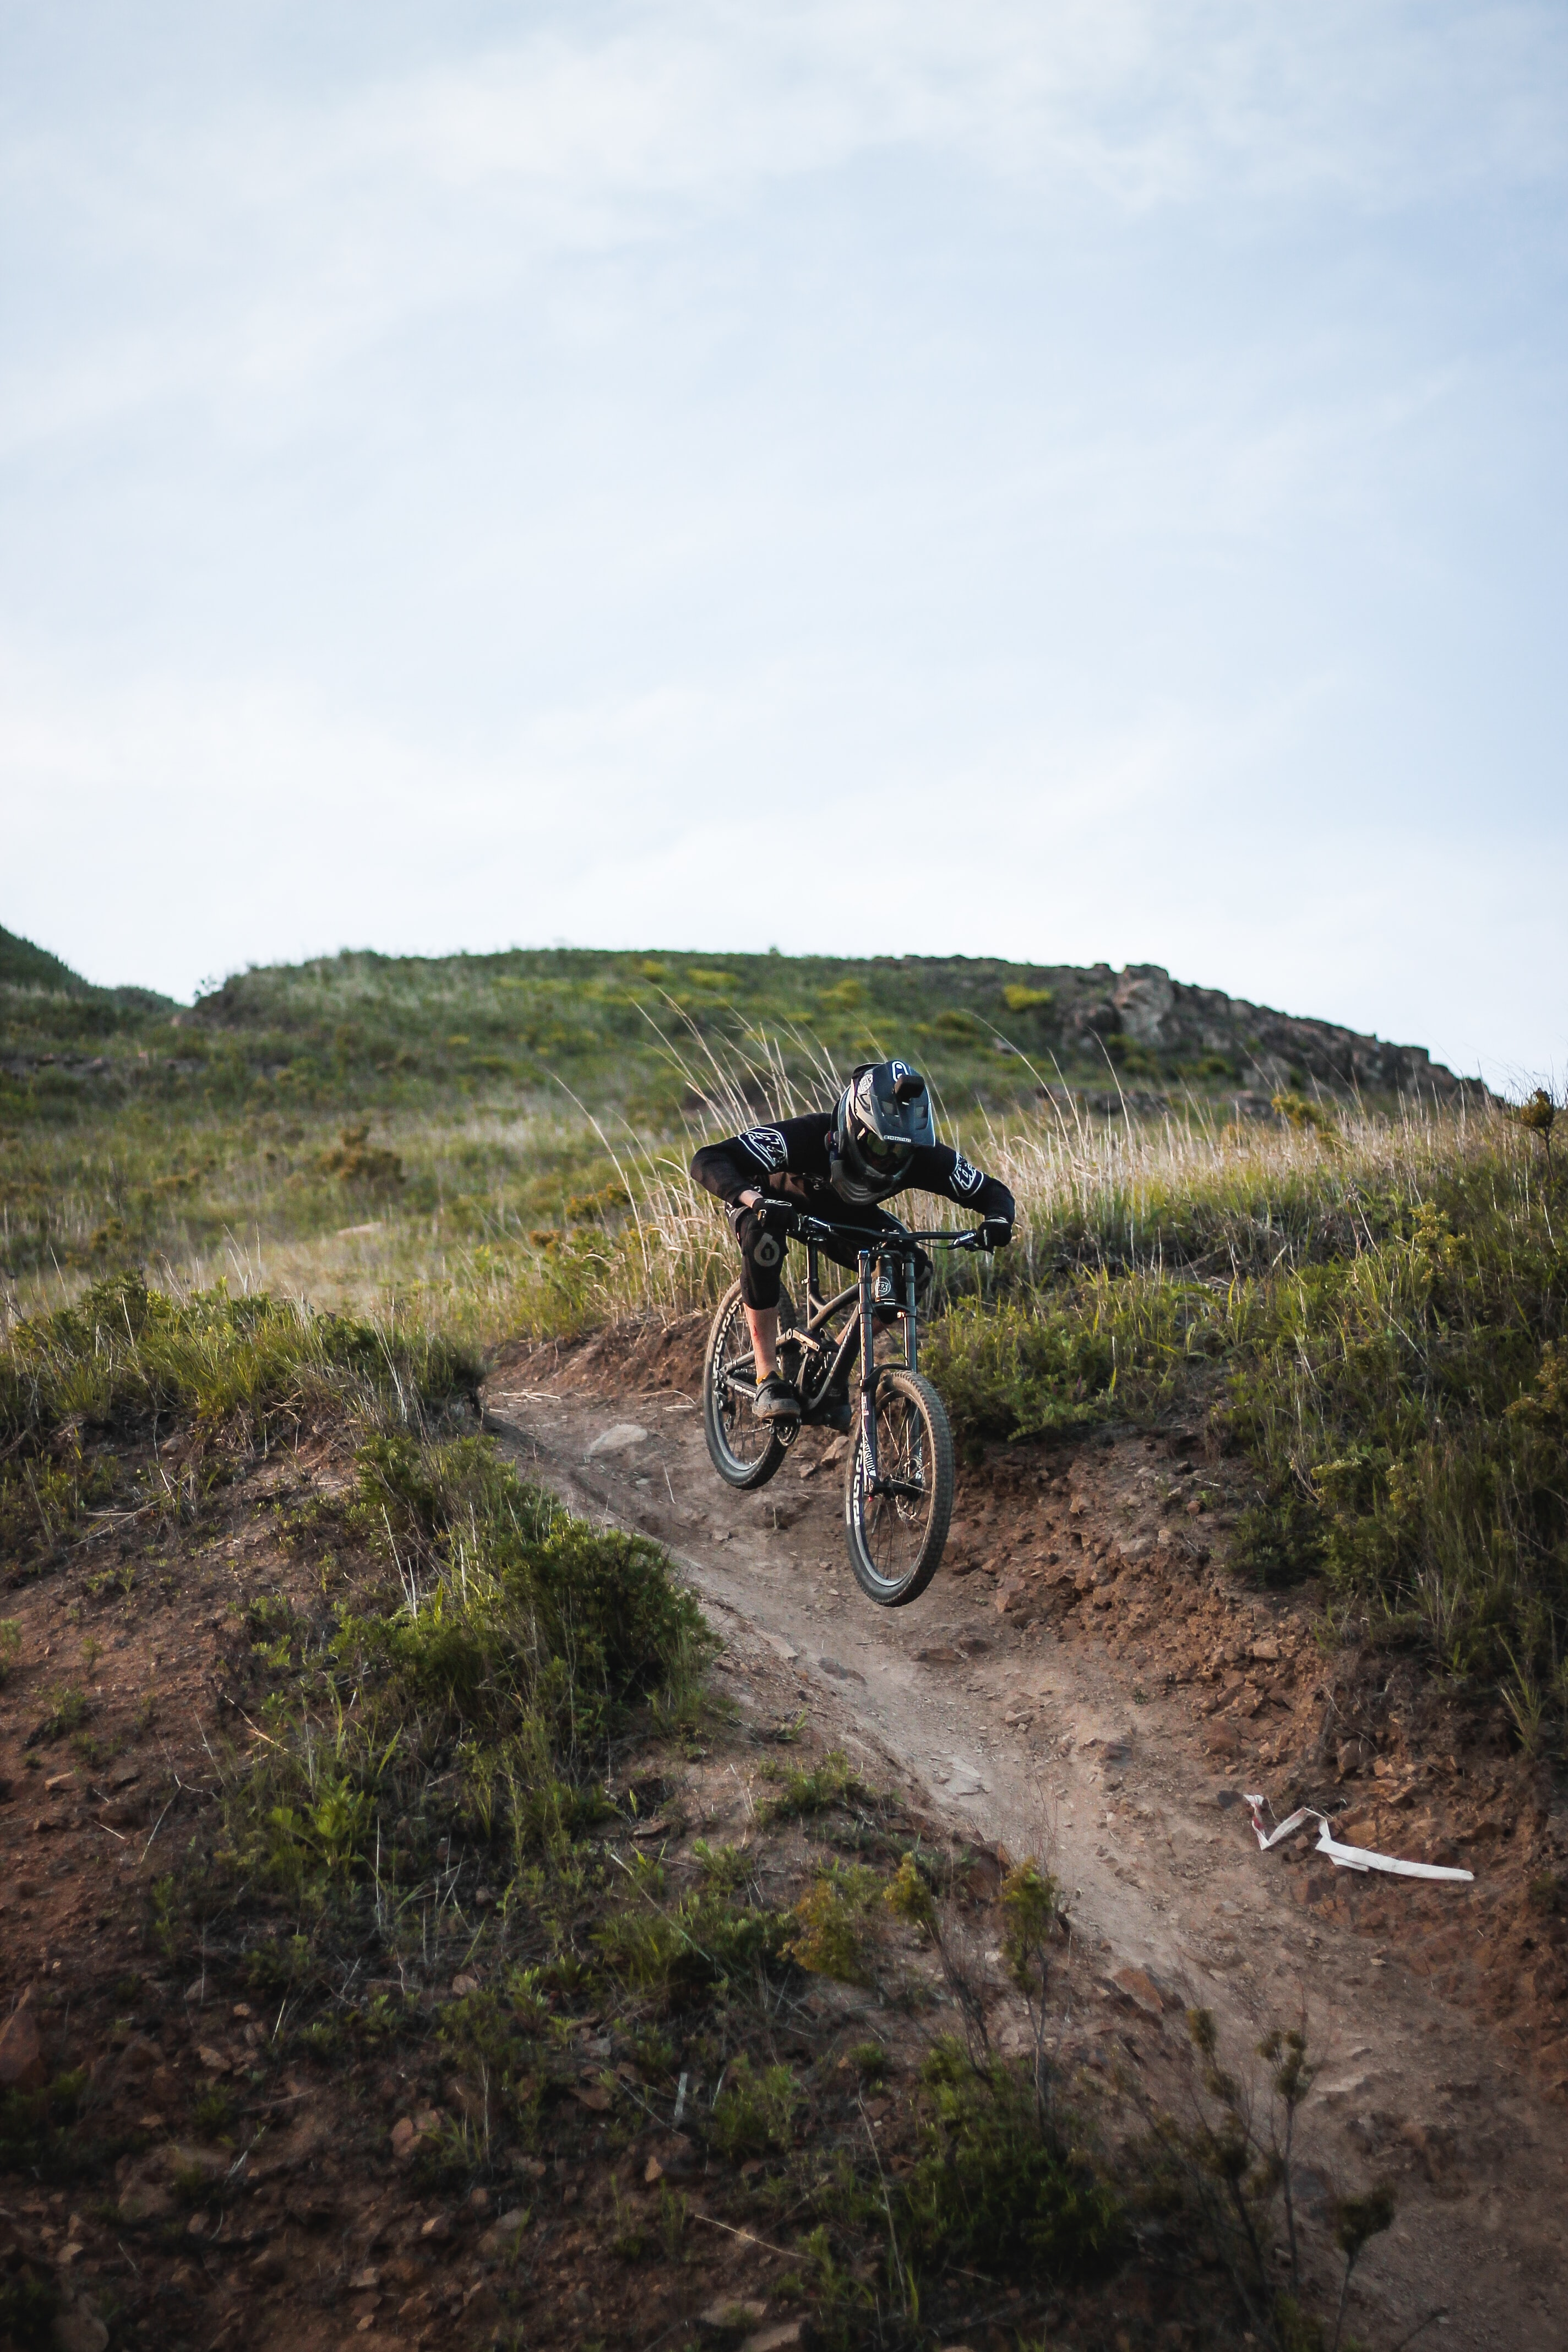 man riding mountain bike on hill under cloudy skies